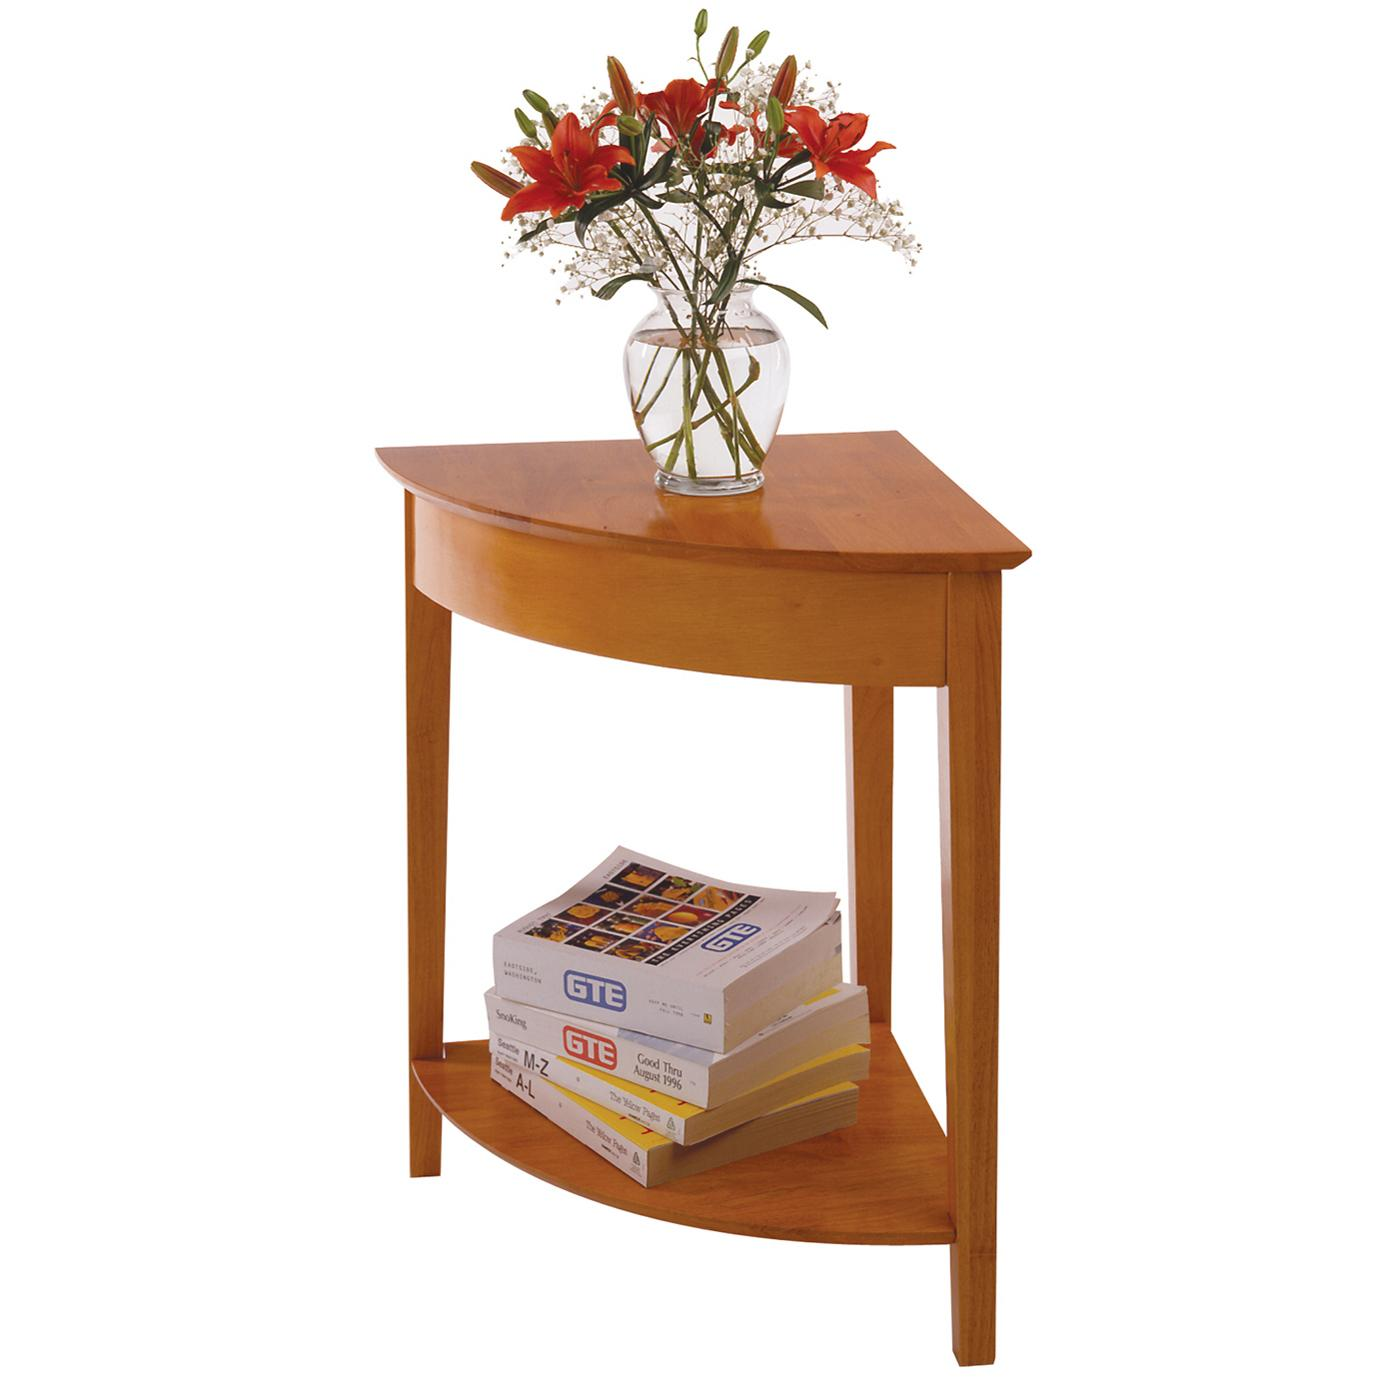 Winsome wood studio corner table ojcommerce - Corner tables for living room online india ...